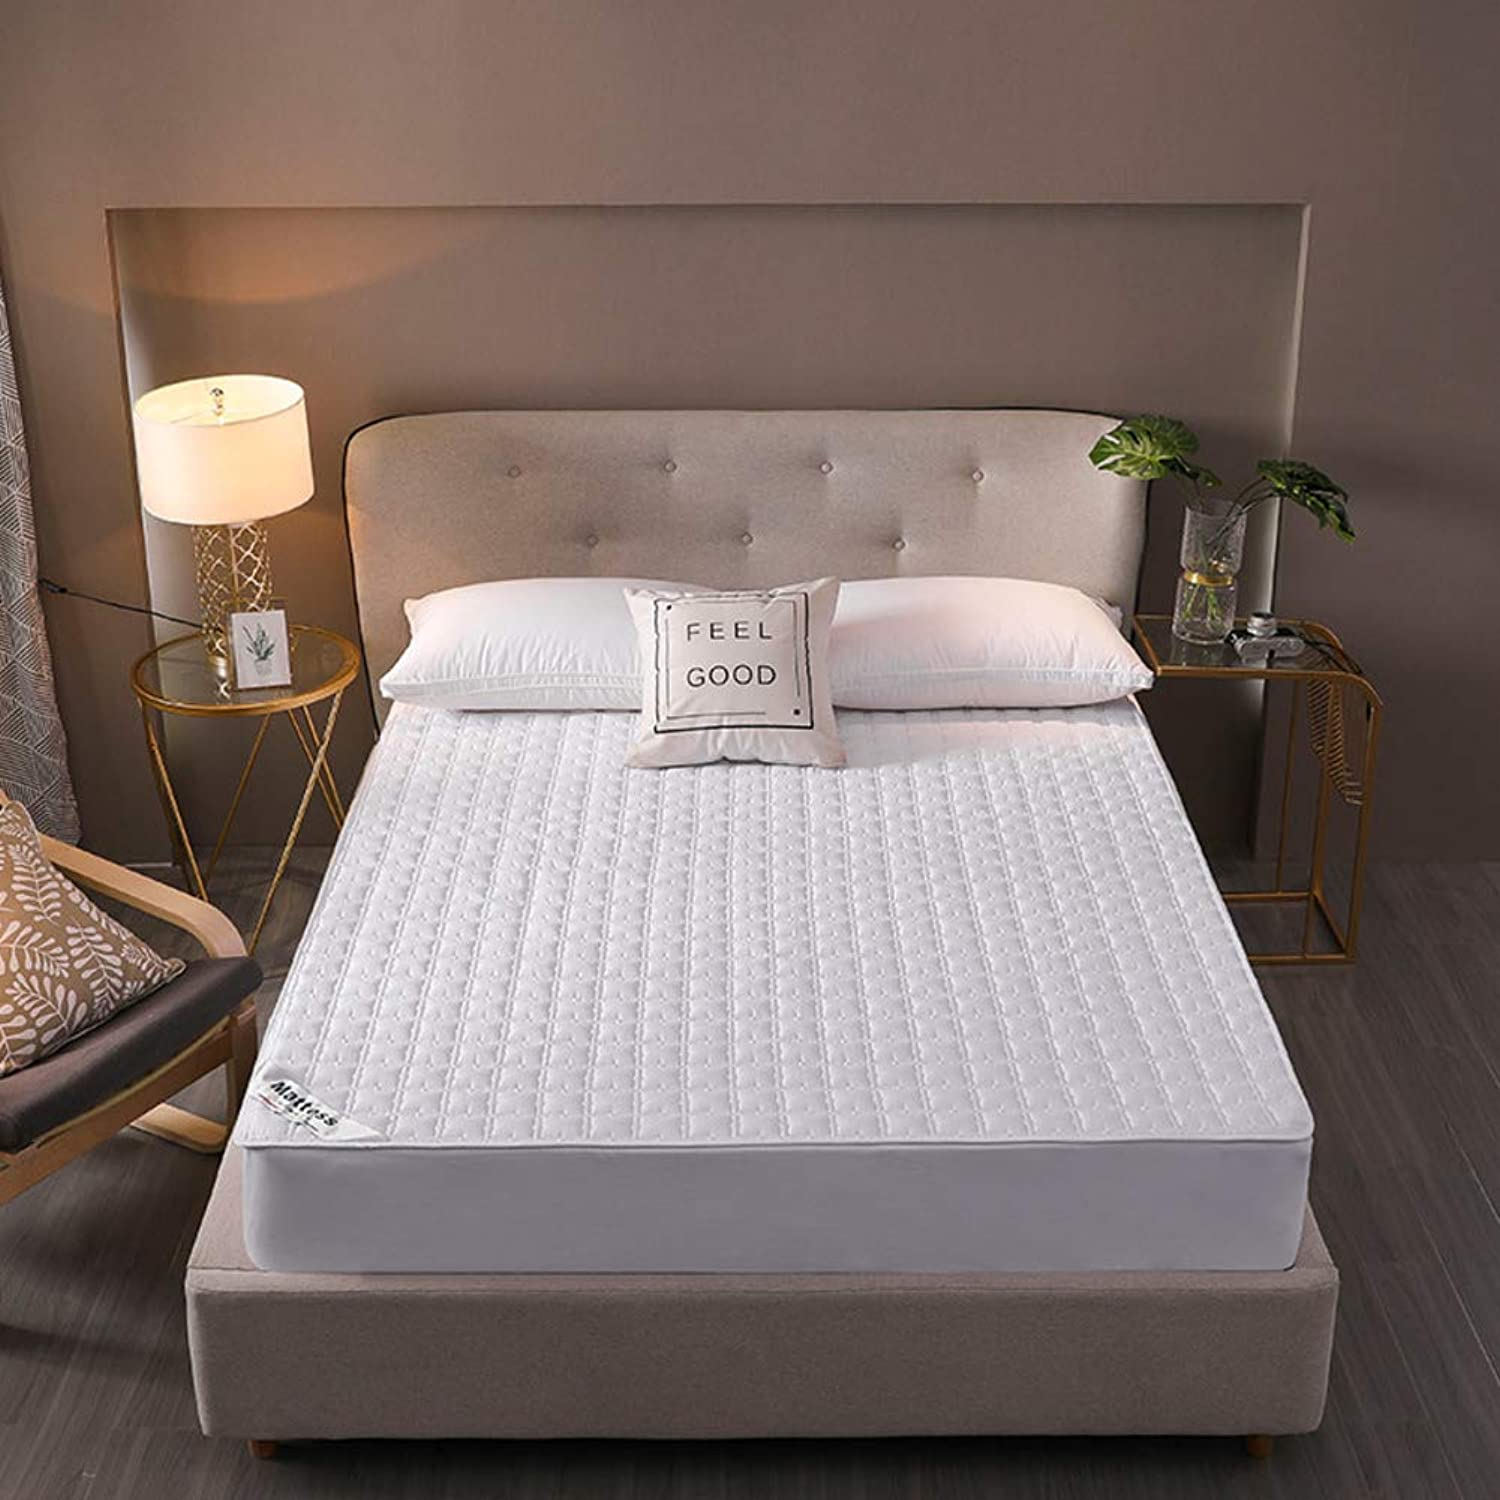 Cotton Mattress Topper, Solid color Quilted Bedroom Comfort Bed roll-White 71x87inch